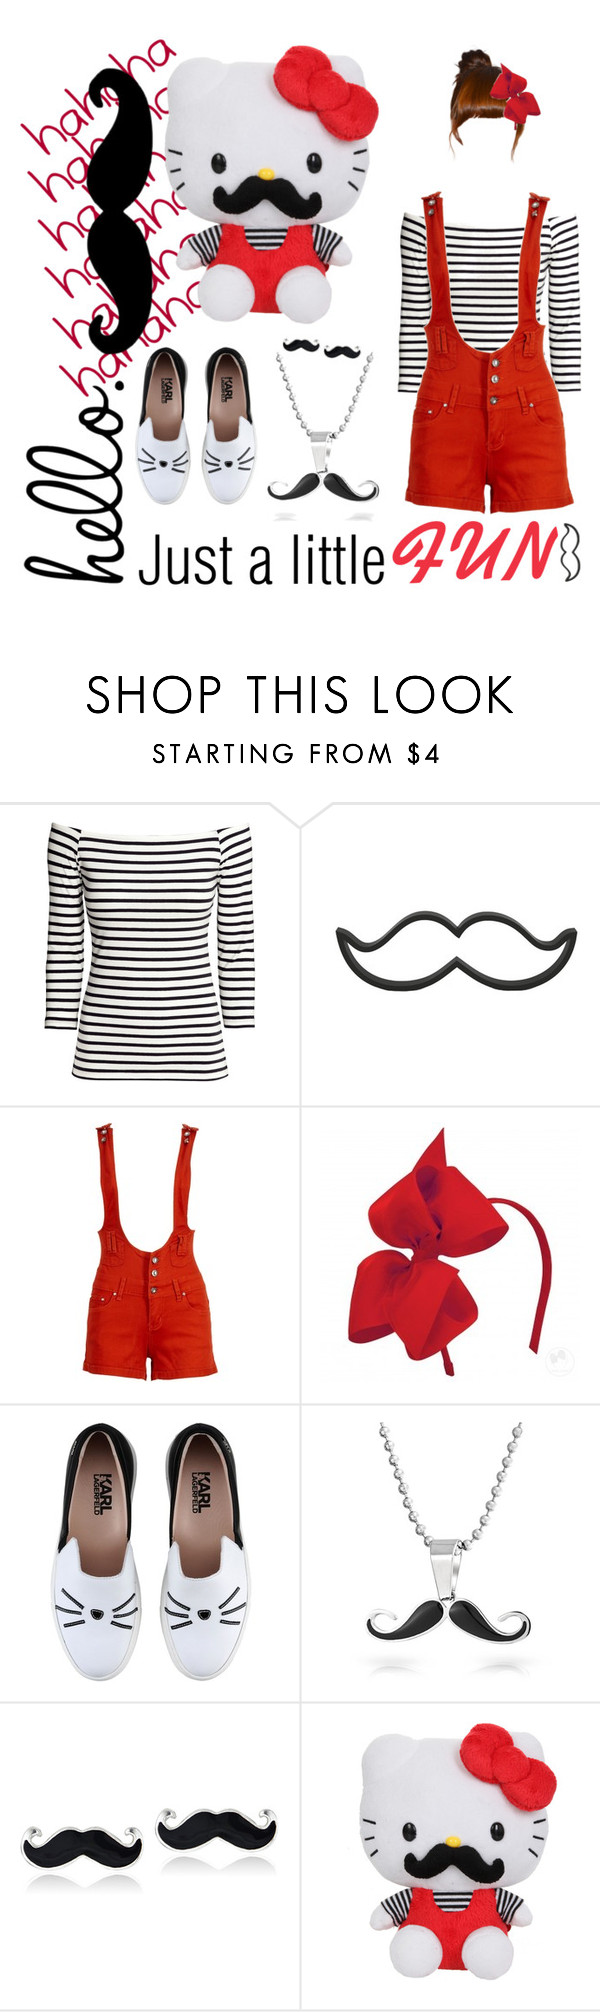 """""""Mustache - Hello Kitty Inspired"""" by micheladavite ❤ liked on Polyvore featuring H&M, Karl Lagerfeld, Bling Jewelry, Mondevio, ELSE and mustache"""